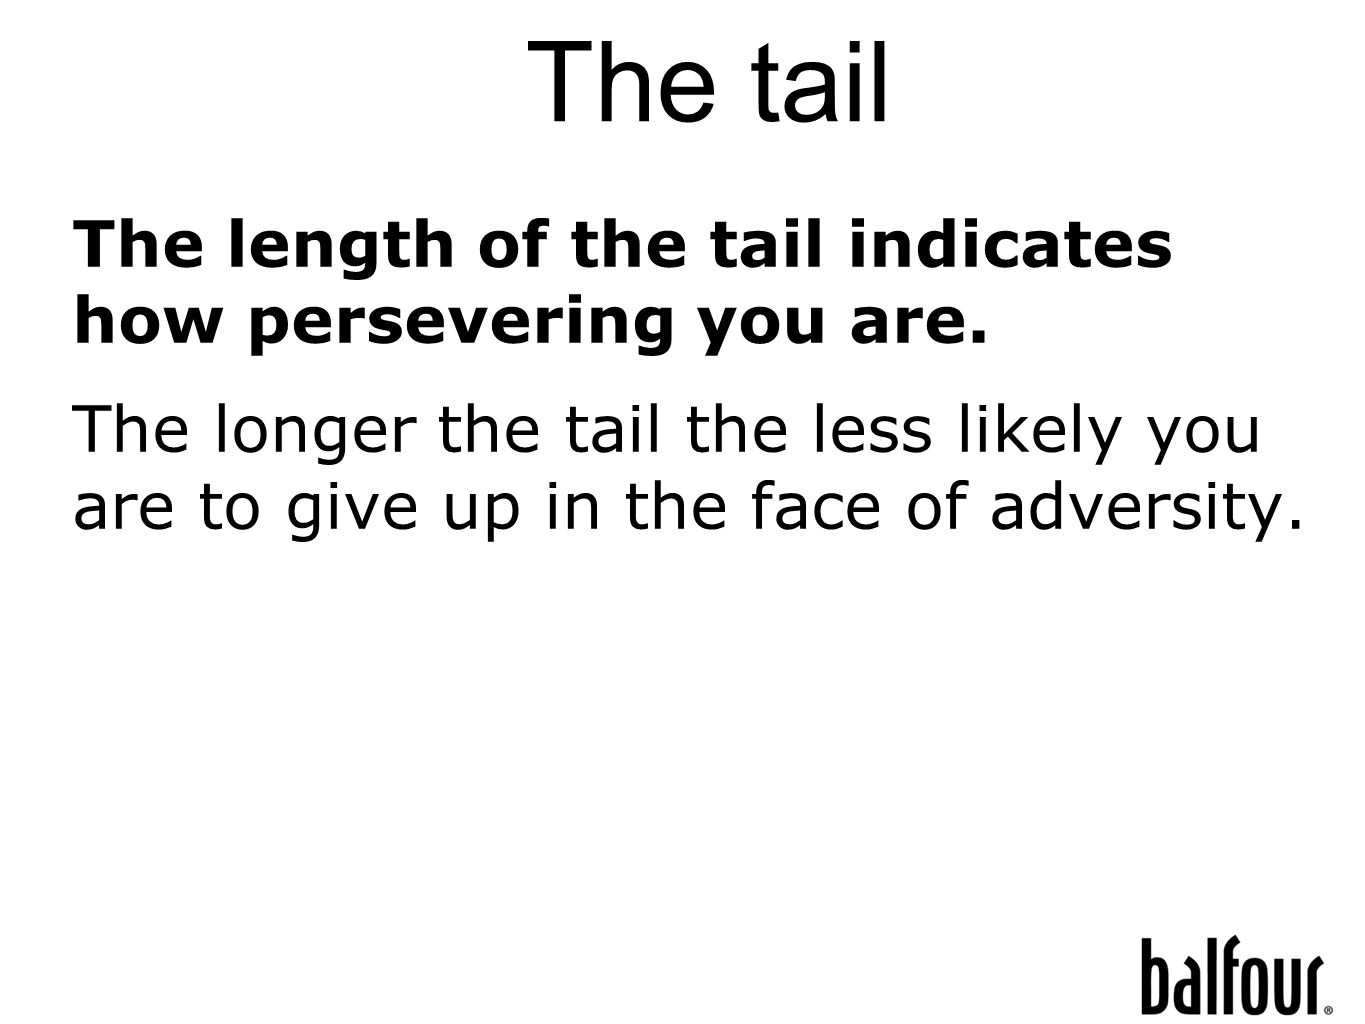 The tail The length of the tail indicates how persevering you are.